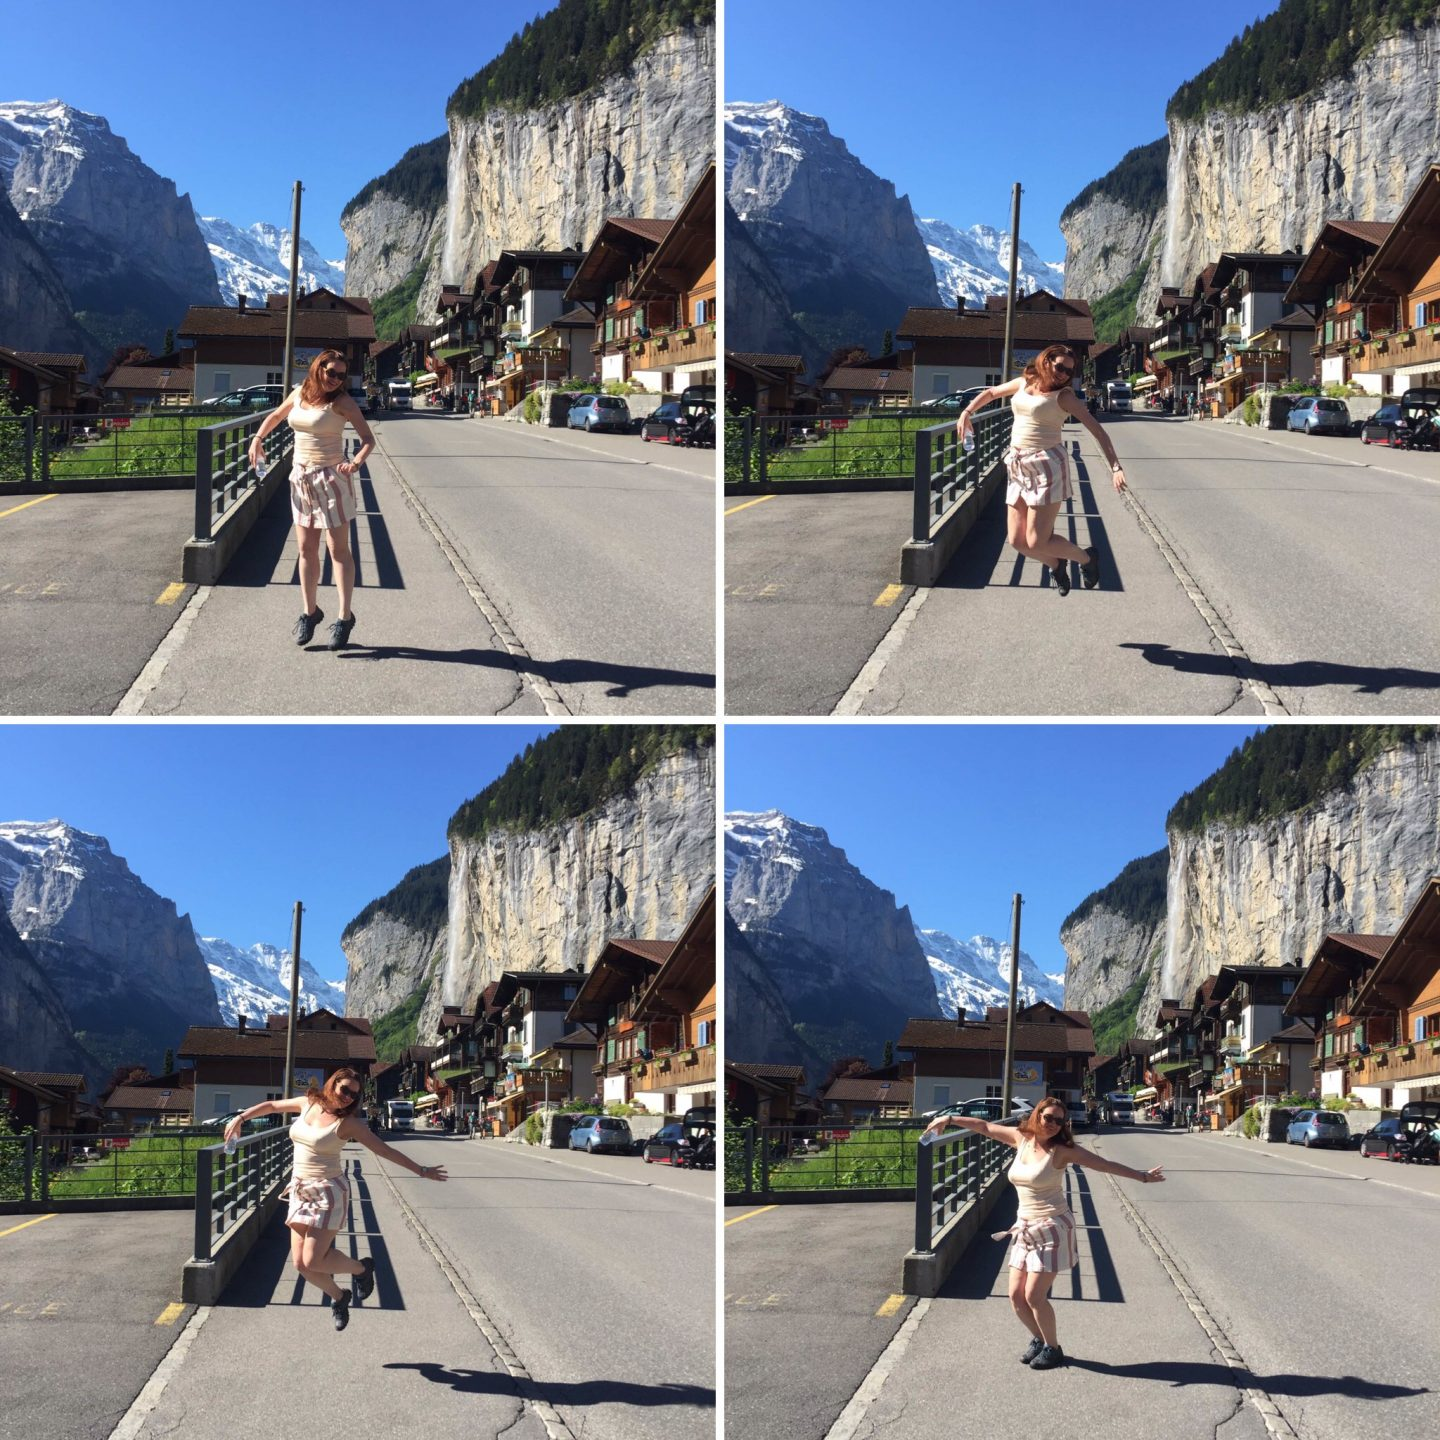 Collage of jumping shots in front of Staubbach waterfall in Lauterbrunnen, Switzerland